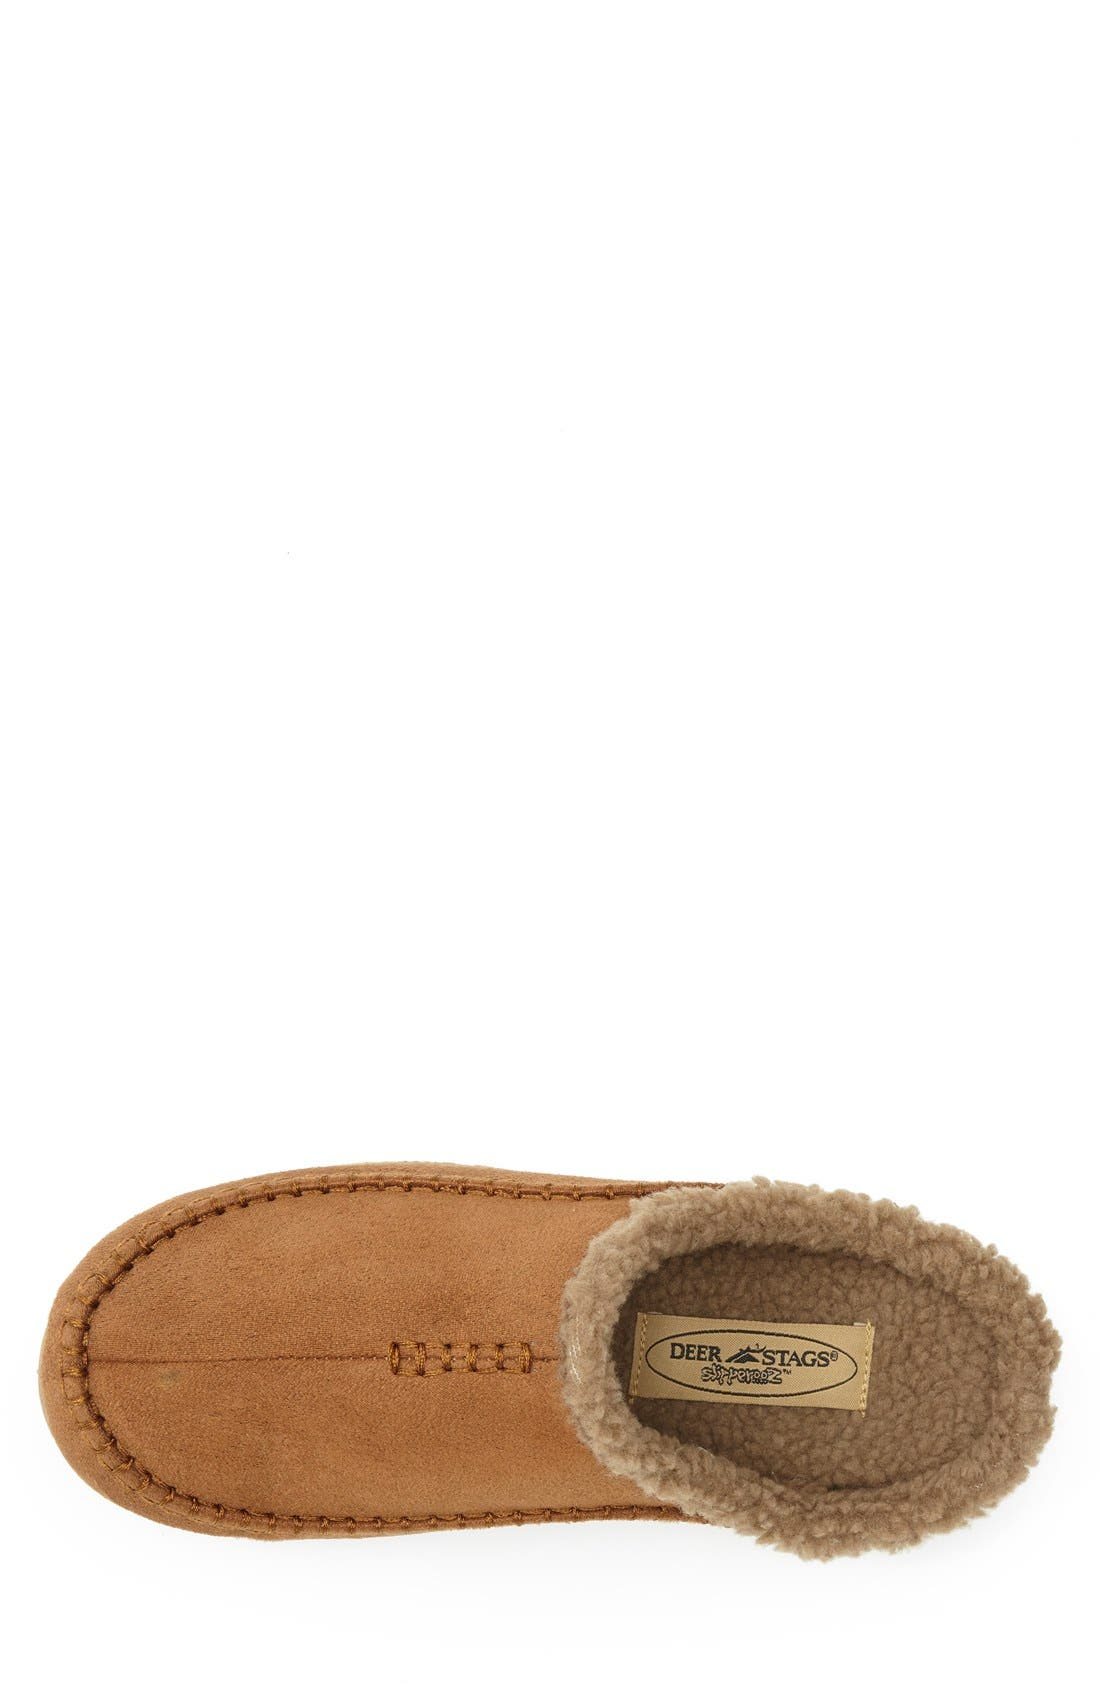 Alternate Image 3  - Deer Stags 'Nordic' Slipper (Men)